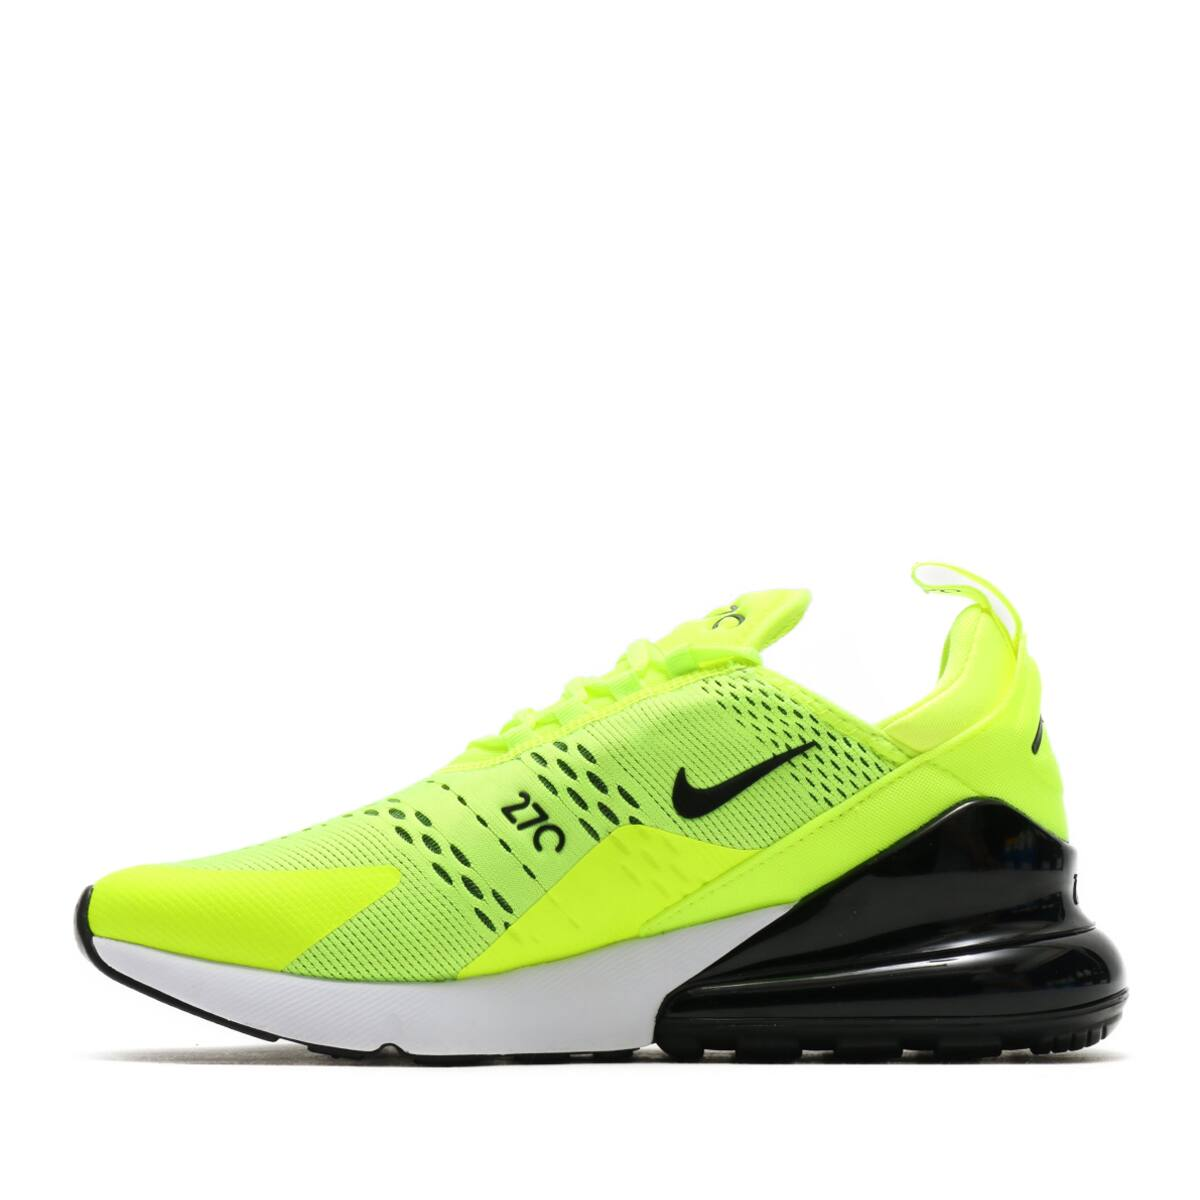 cc13b57209 NIKE AIR MAX 270 VOLT/BLACK-DARK GREY-WHITE